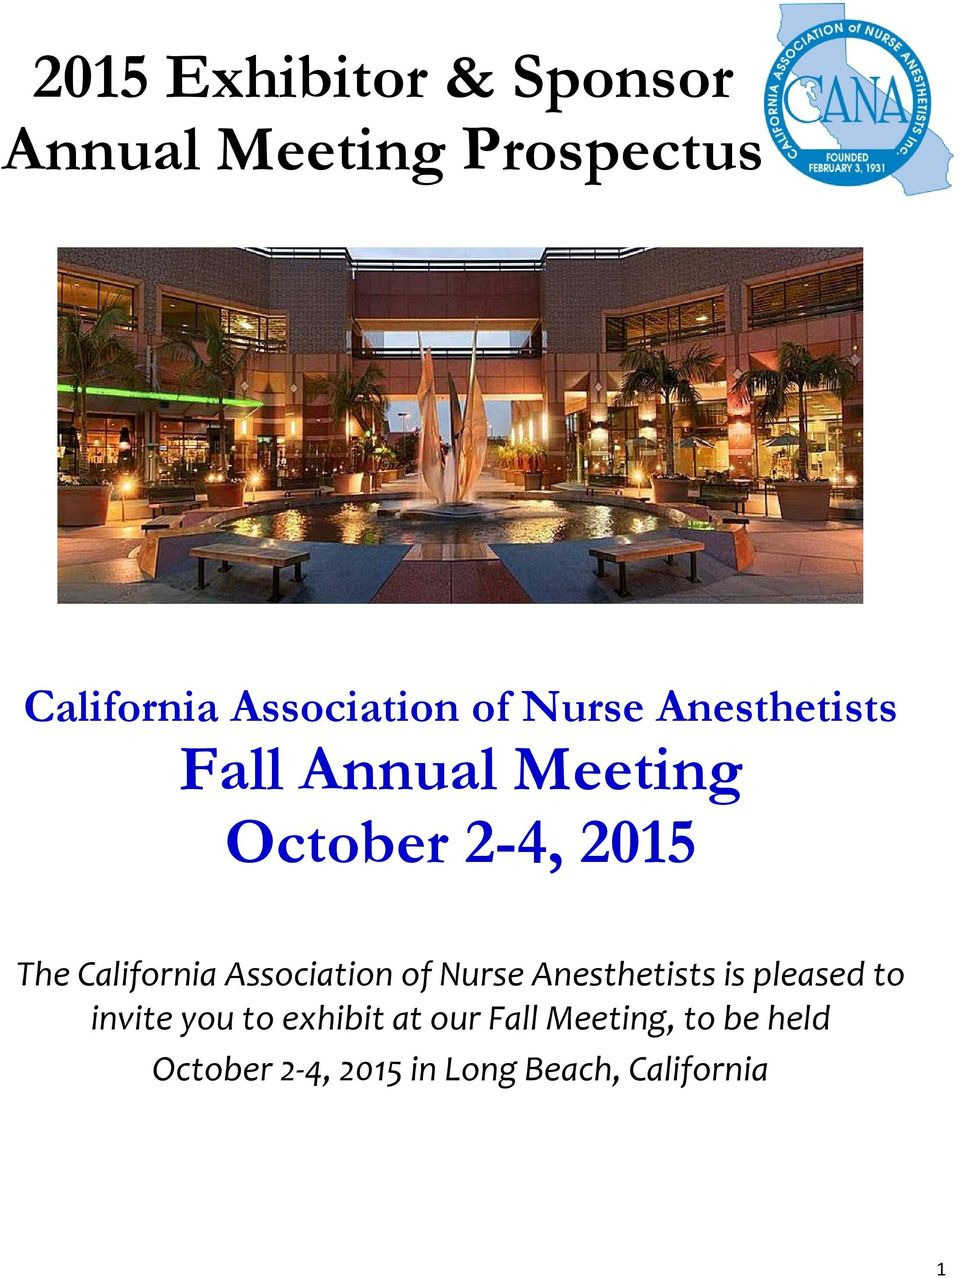 California Association of Nurse Anesthetists is pleased to invite you to